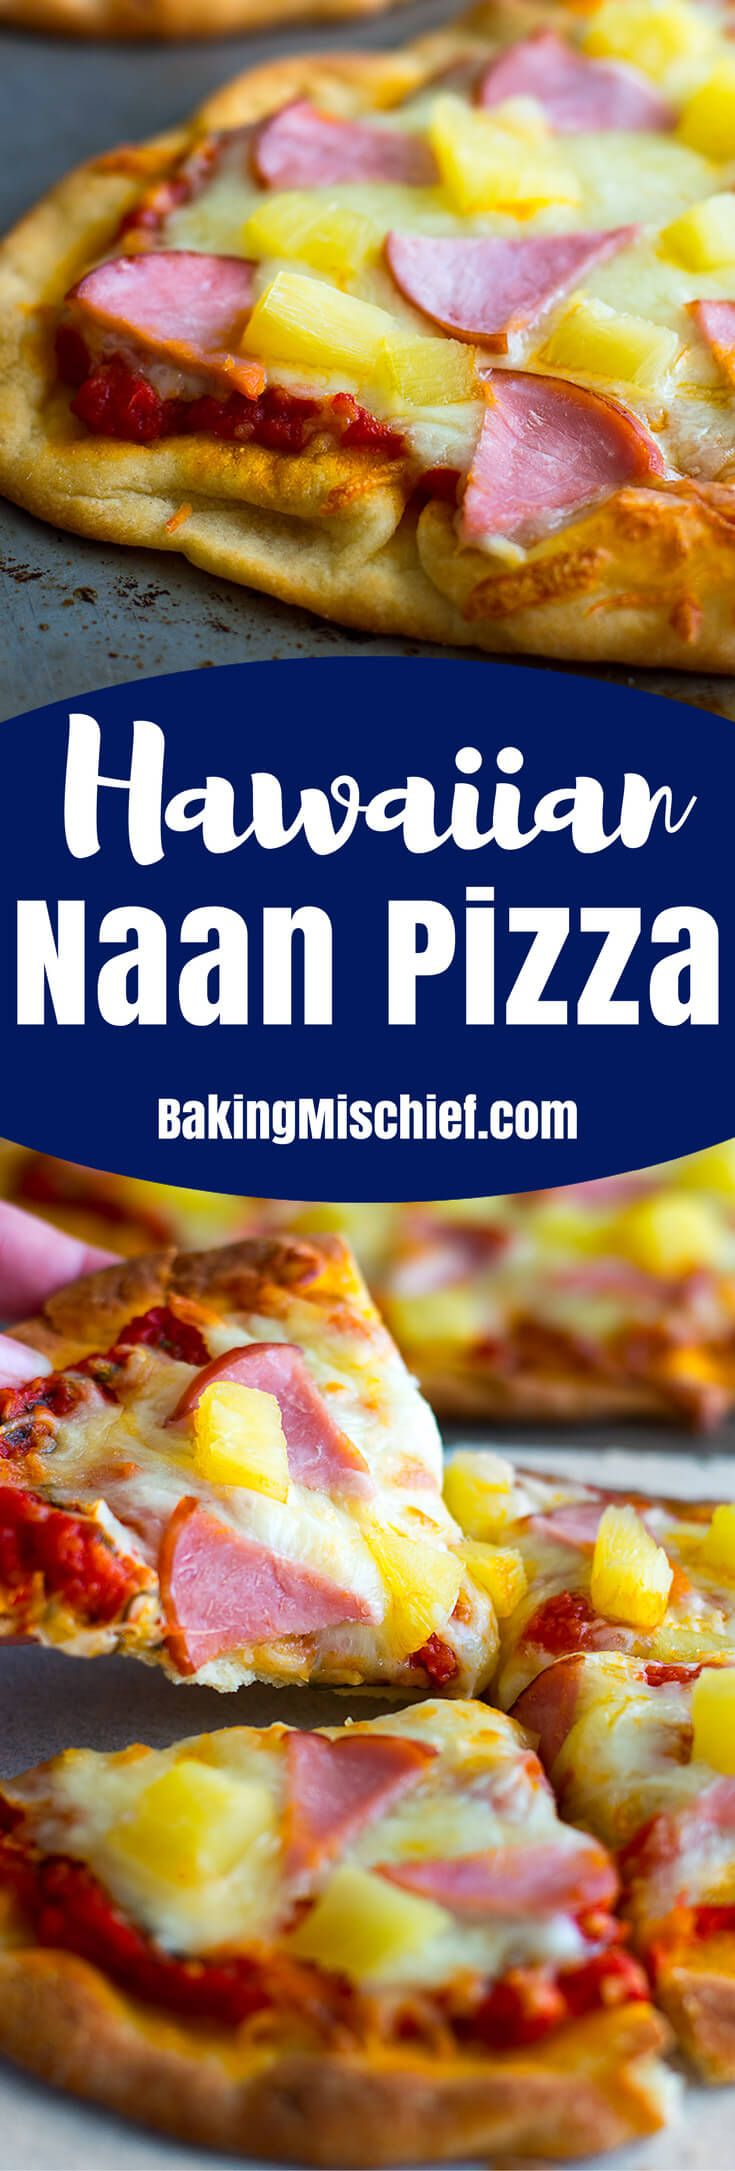 Hawaiian Naan Pizza makes a deliciously easy dinner that's cheaper, faster, and healthier than delivery! From BakingMischief.com | Homemade Pizza | Dinner for Two |